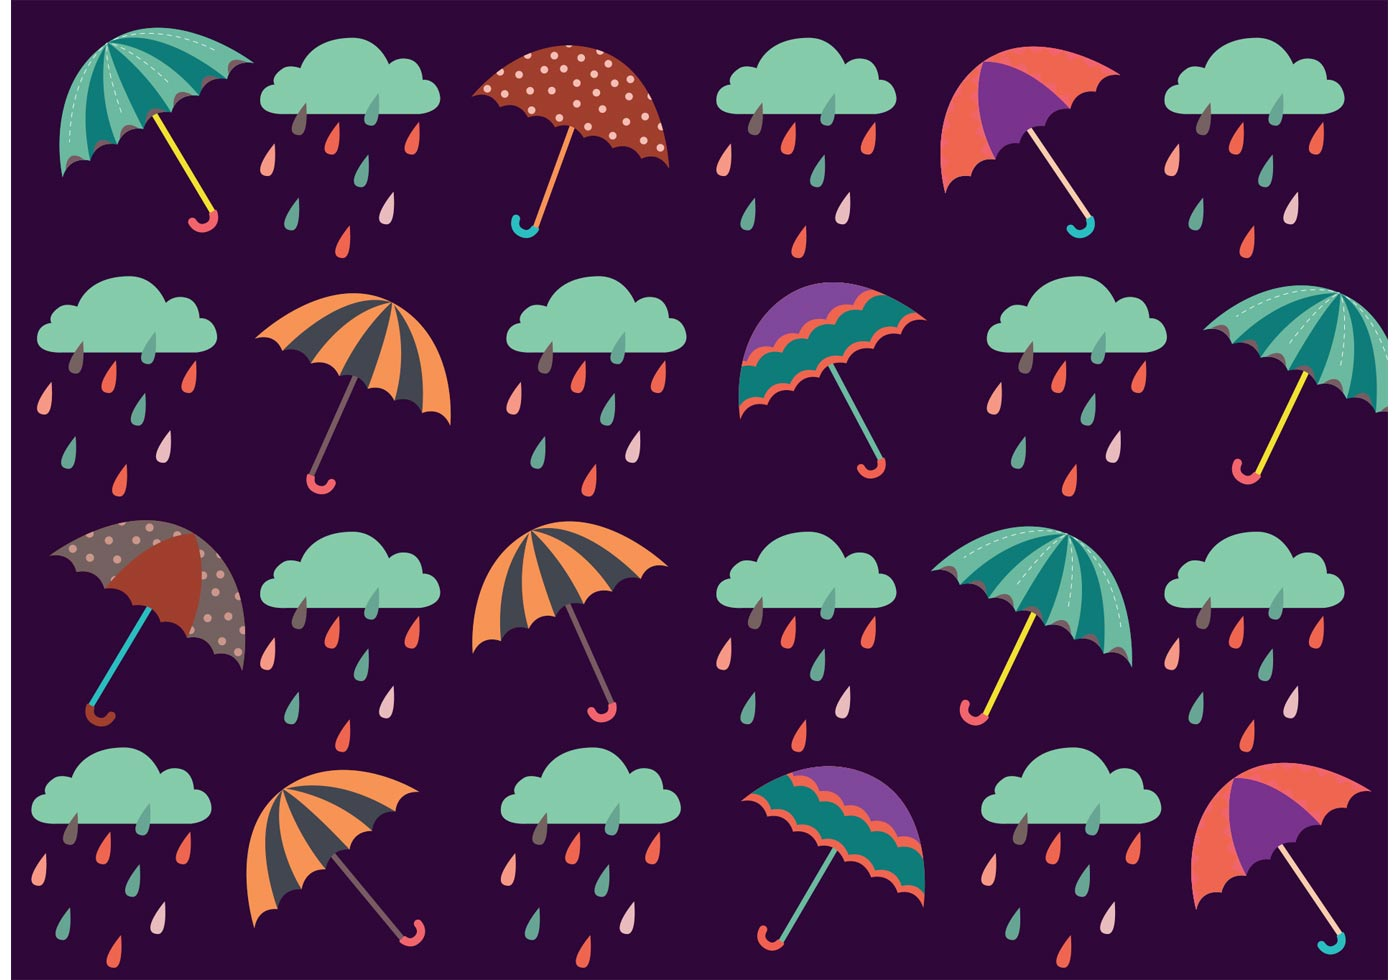 Spring Shower Pattern Free Vector Art - (19231 Free Downloads)